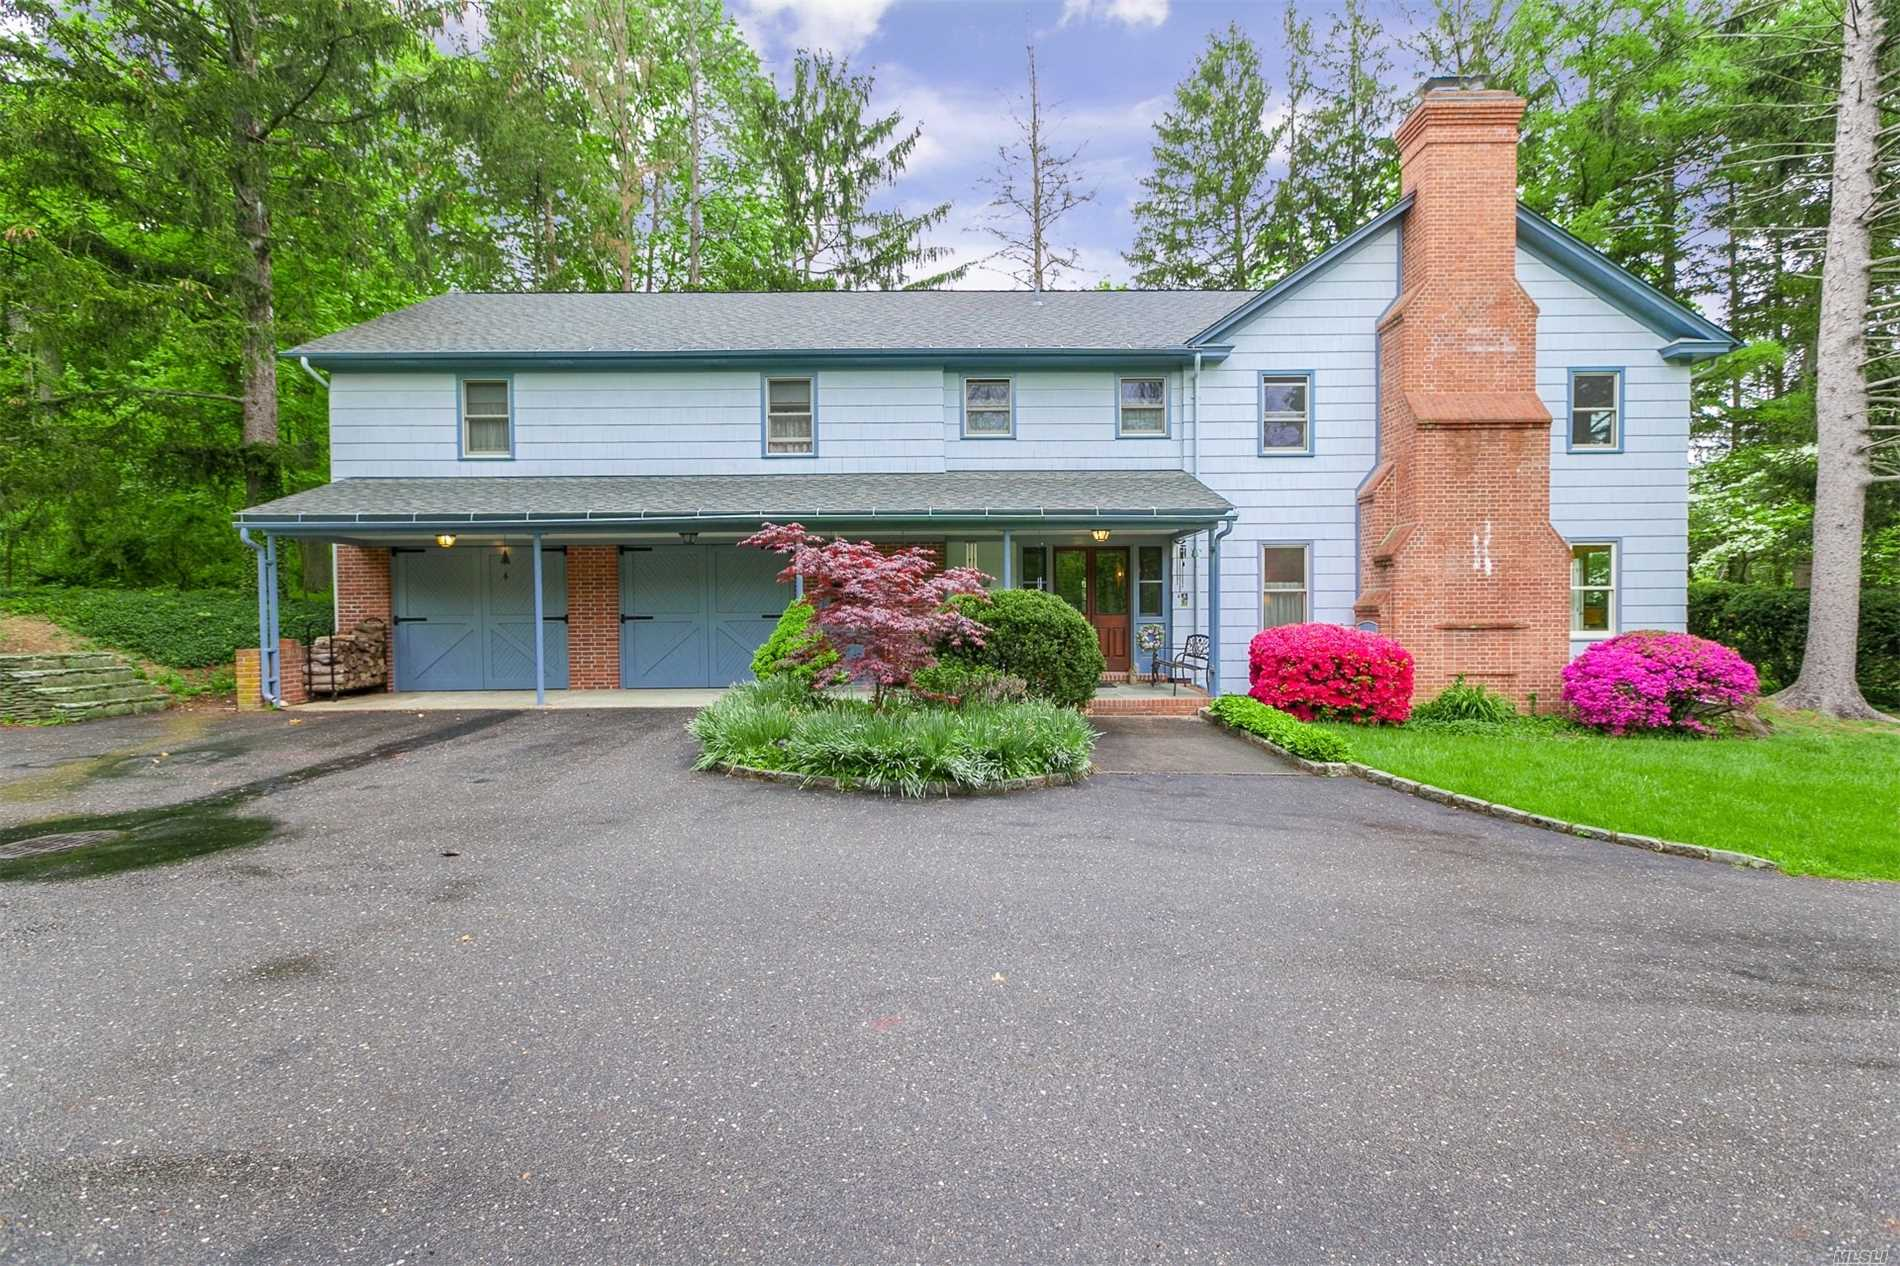 Photo of home for sale at 8 Wels Ln, Setauket NY